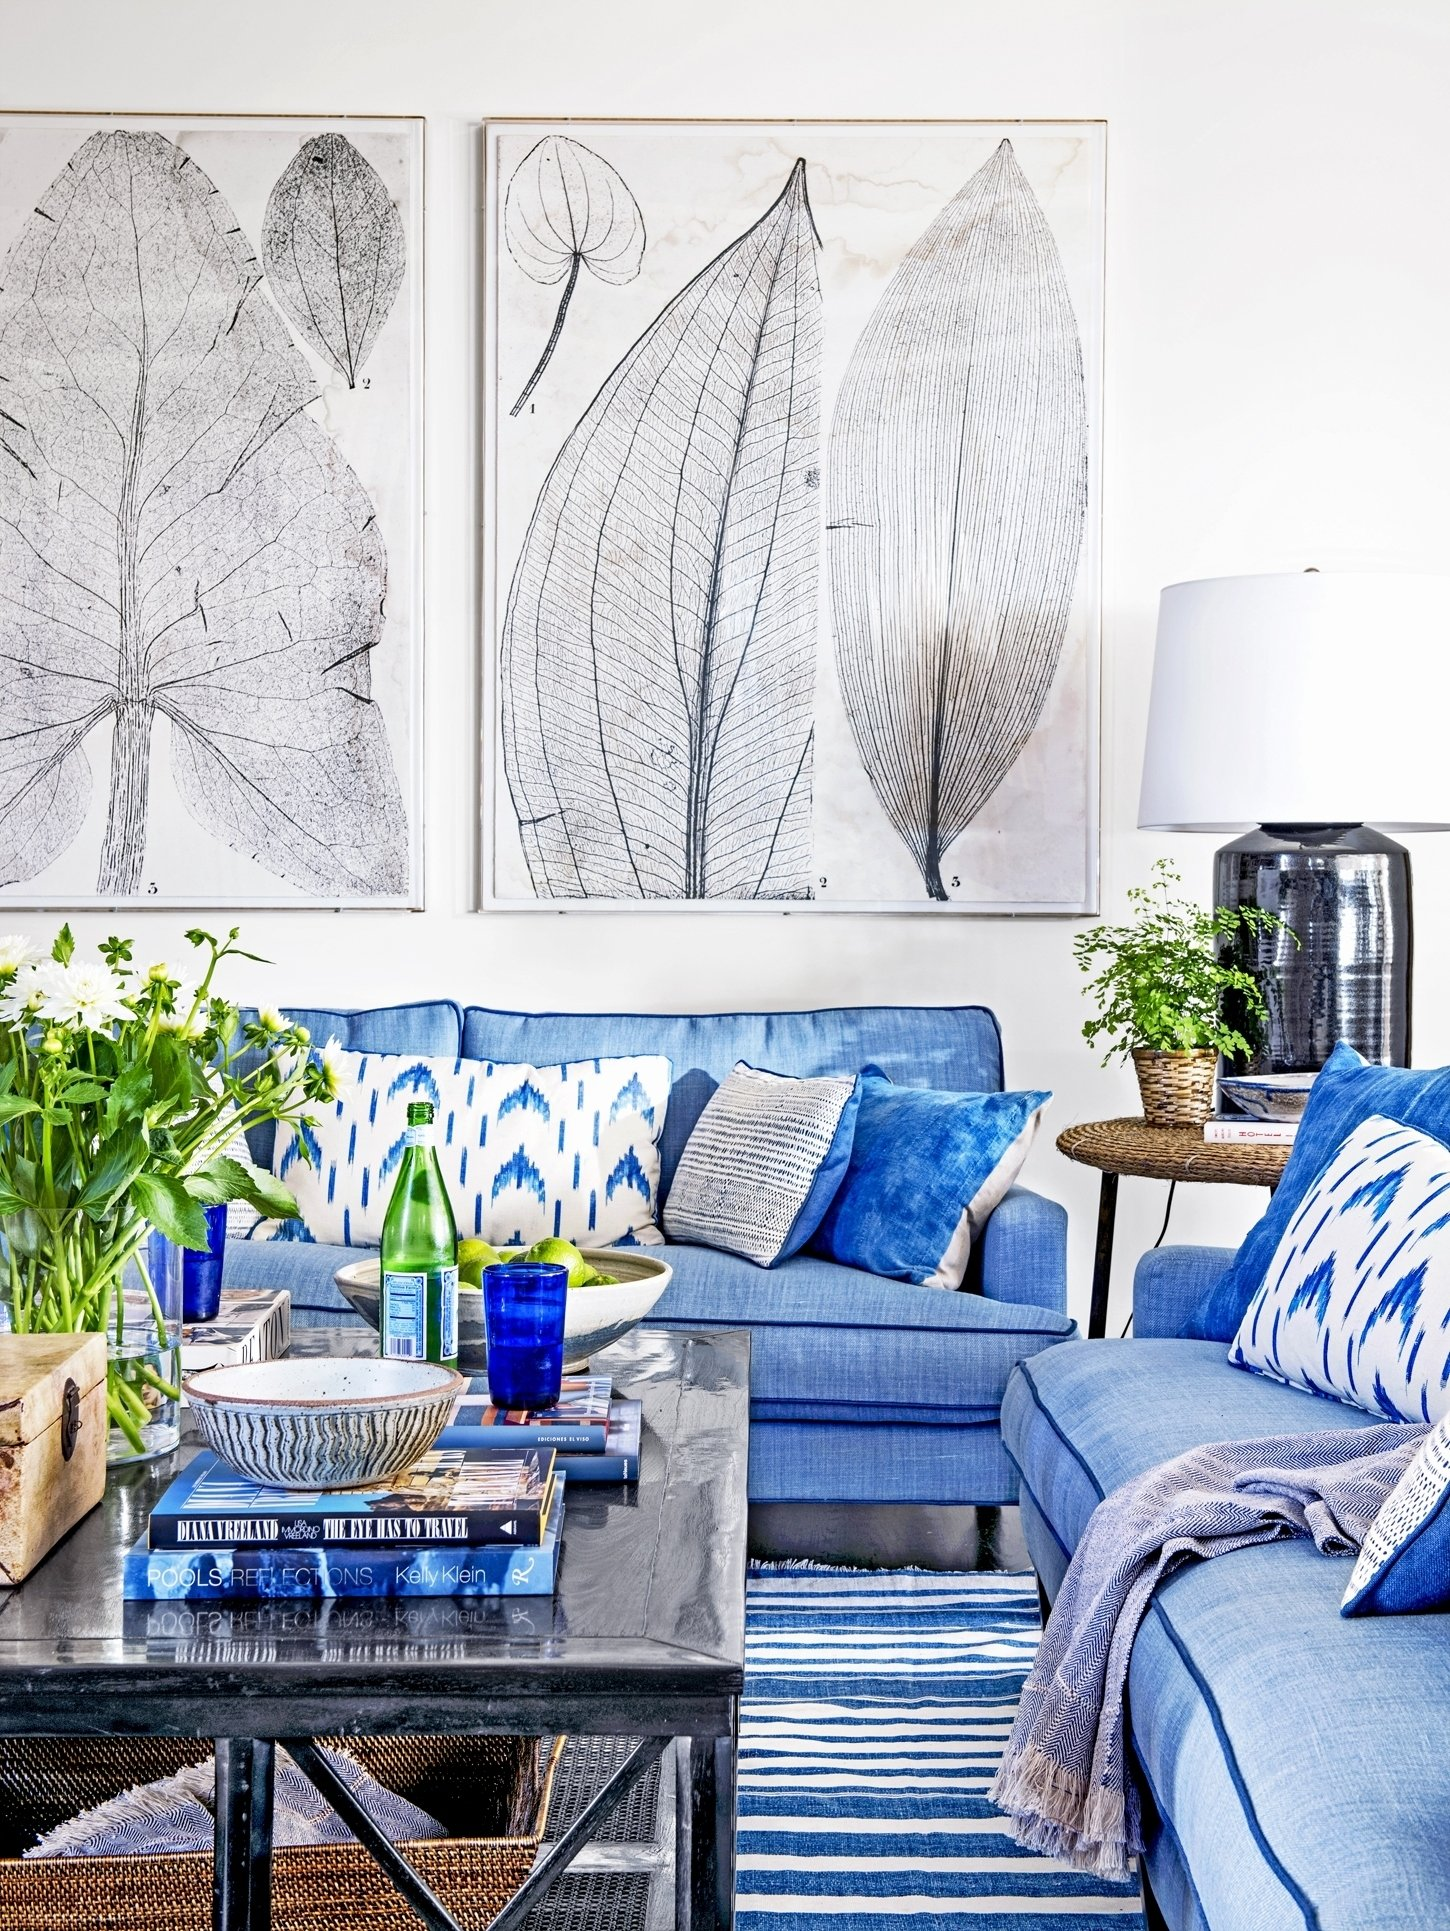 10 Stunning Blue And White Living Room Ideas beautiful blue and white living room decorating ideas along with 2021